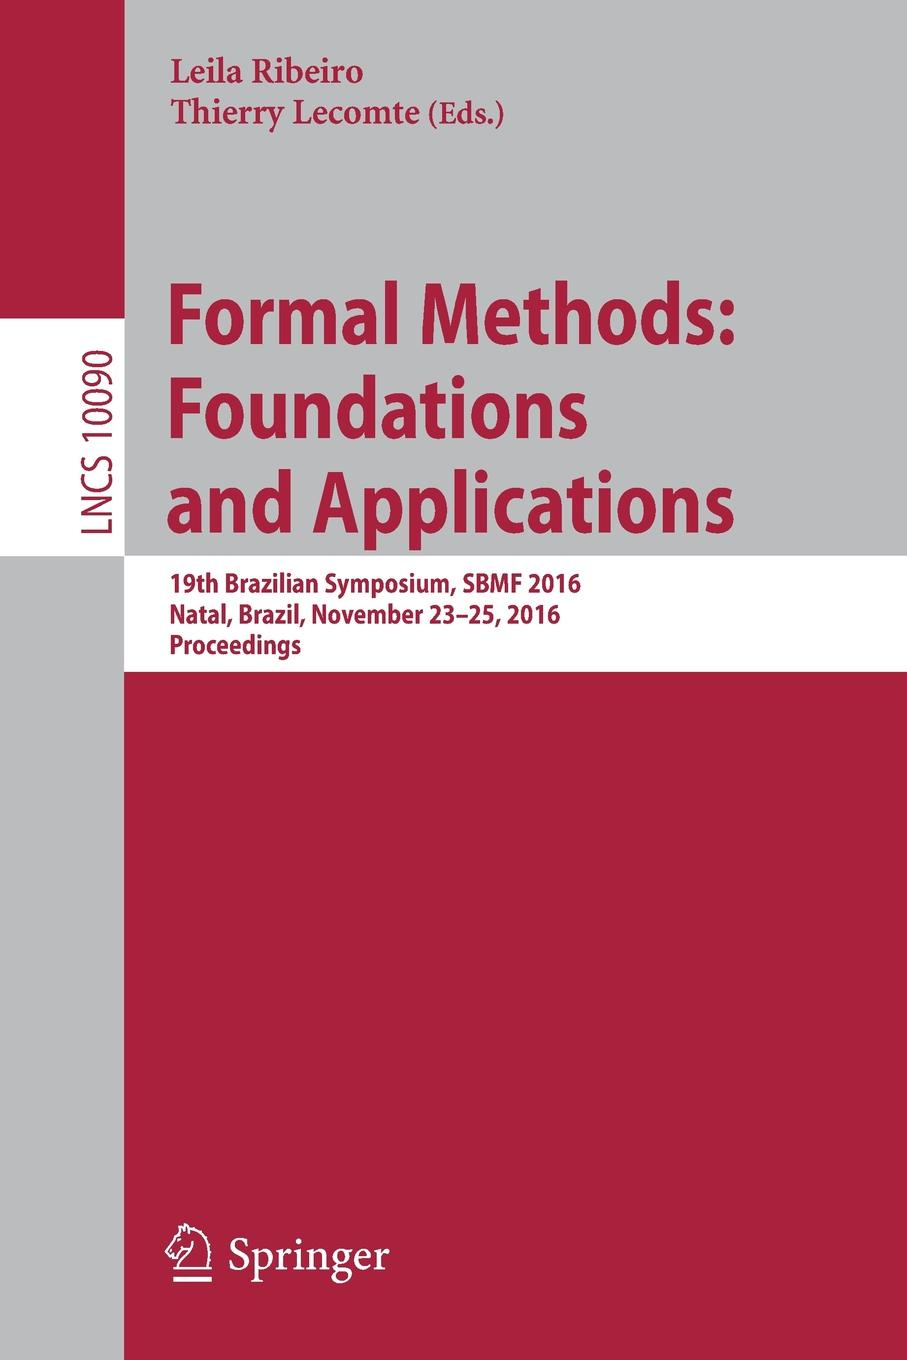 Formal Methods. Foundations and Applications : 19th Brazilian Symposium, SBMF 2016, Natal, Brazil, November 23-25, 2016, Proceedings angela henderson c family theories foundations and applications